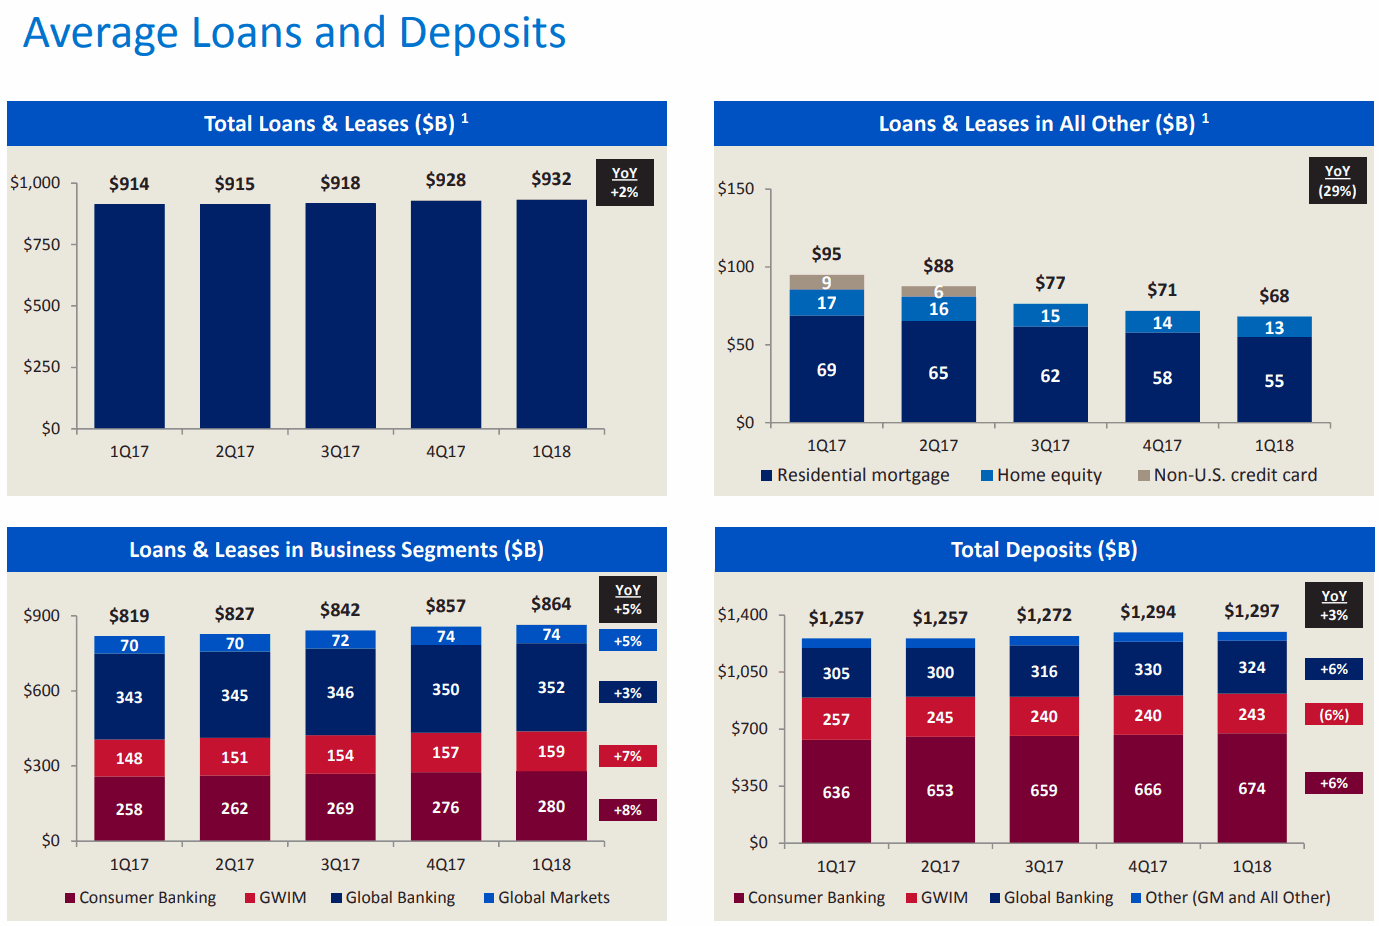 Bank-of-America-Average-Loans-and-Deposits